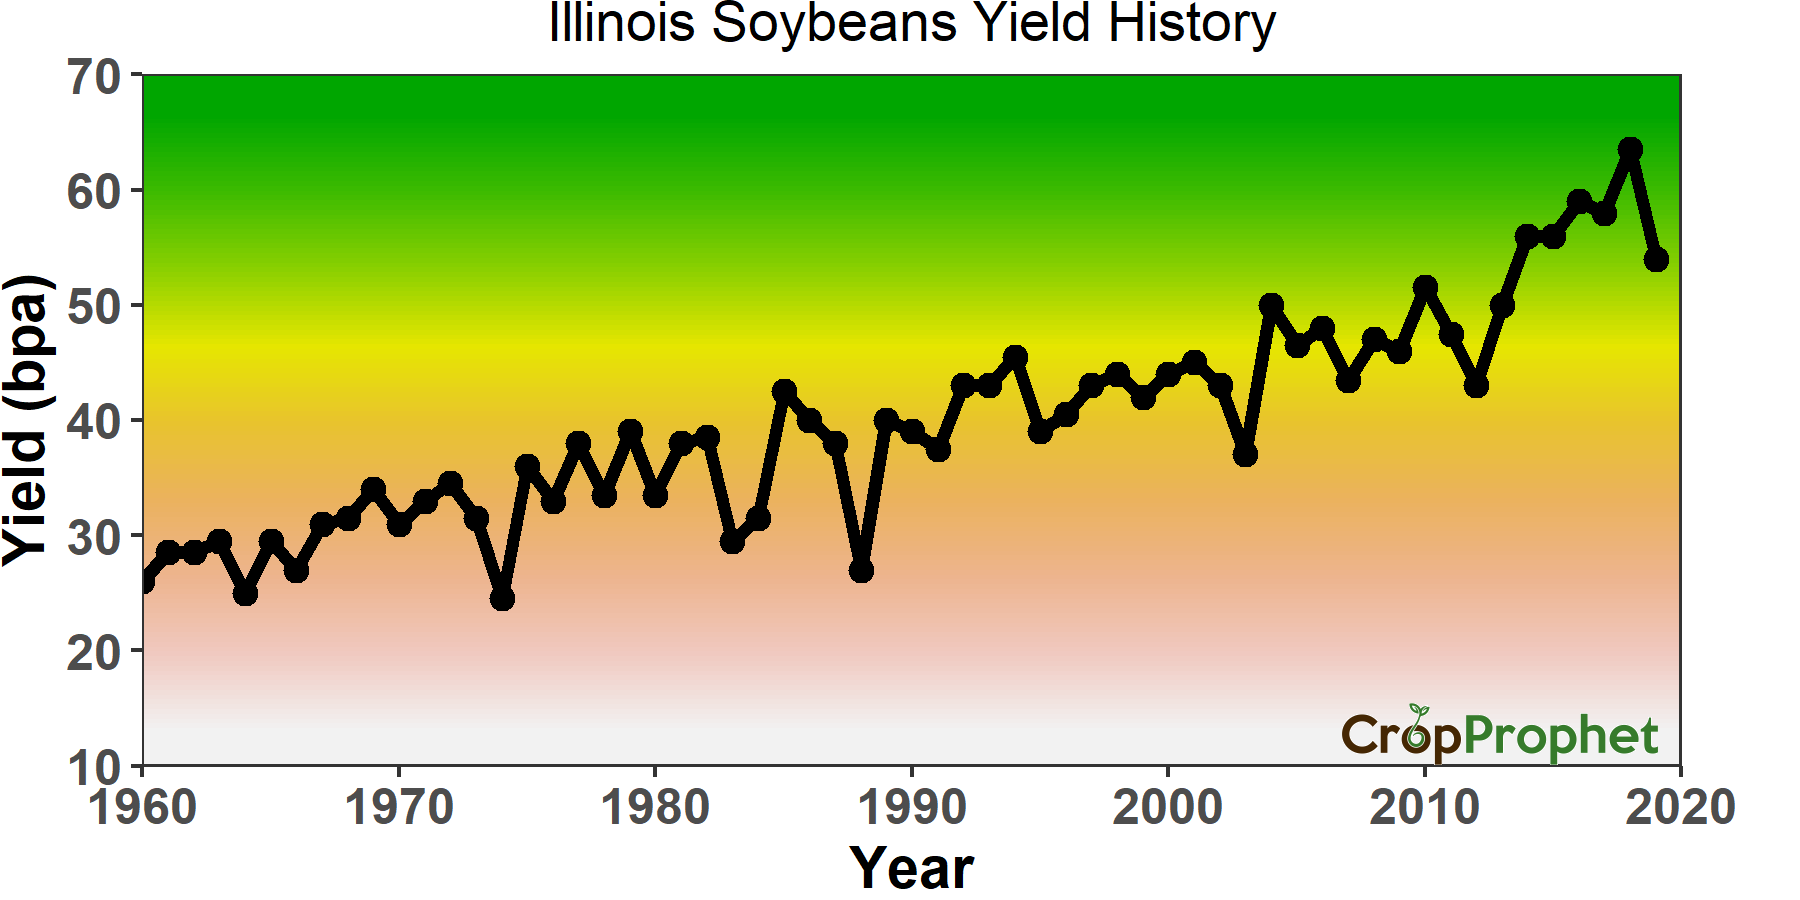 Illinois Soybean Yield per Acre 1960-2019